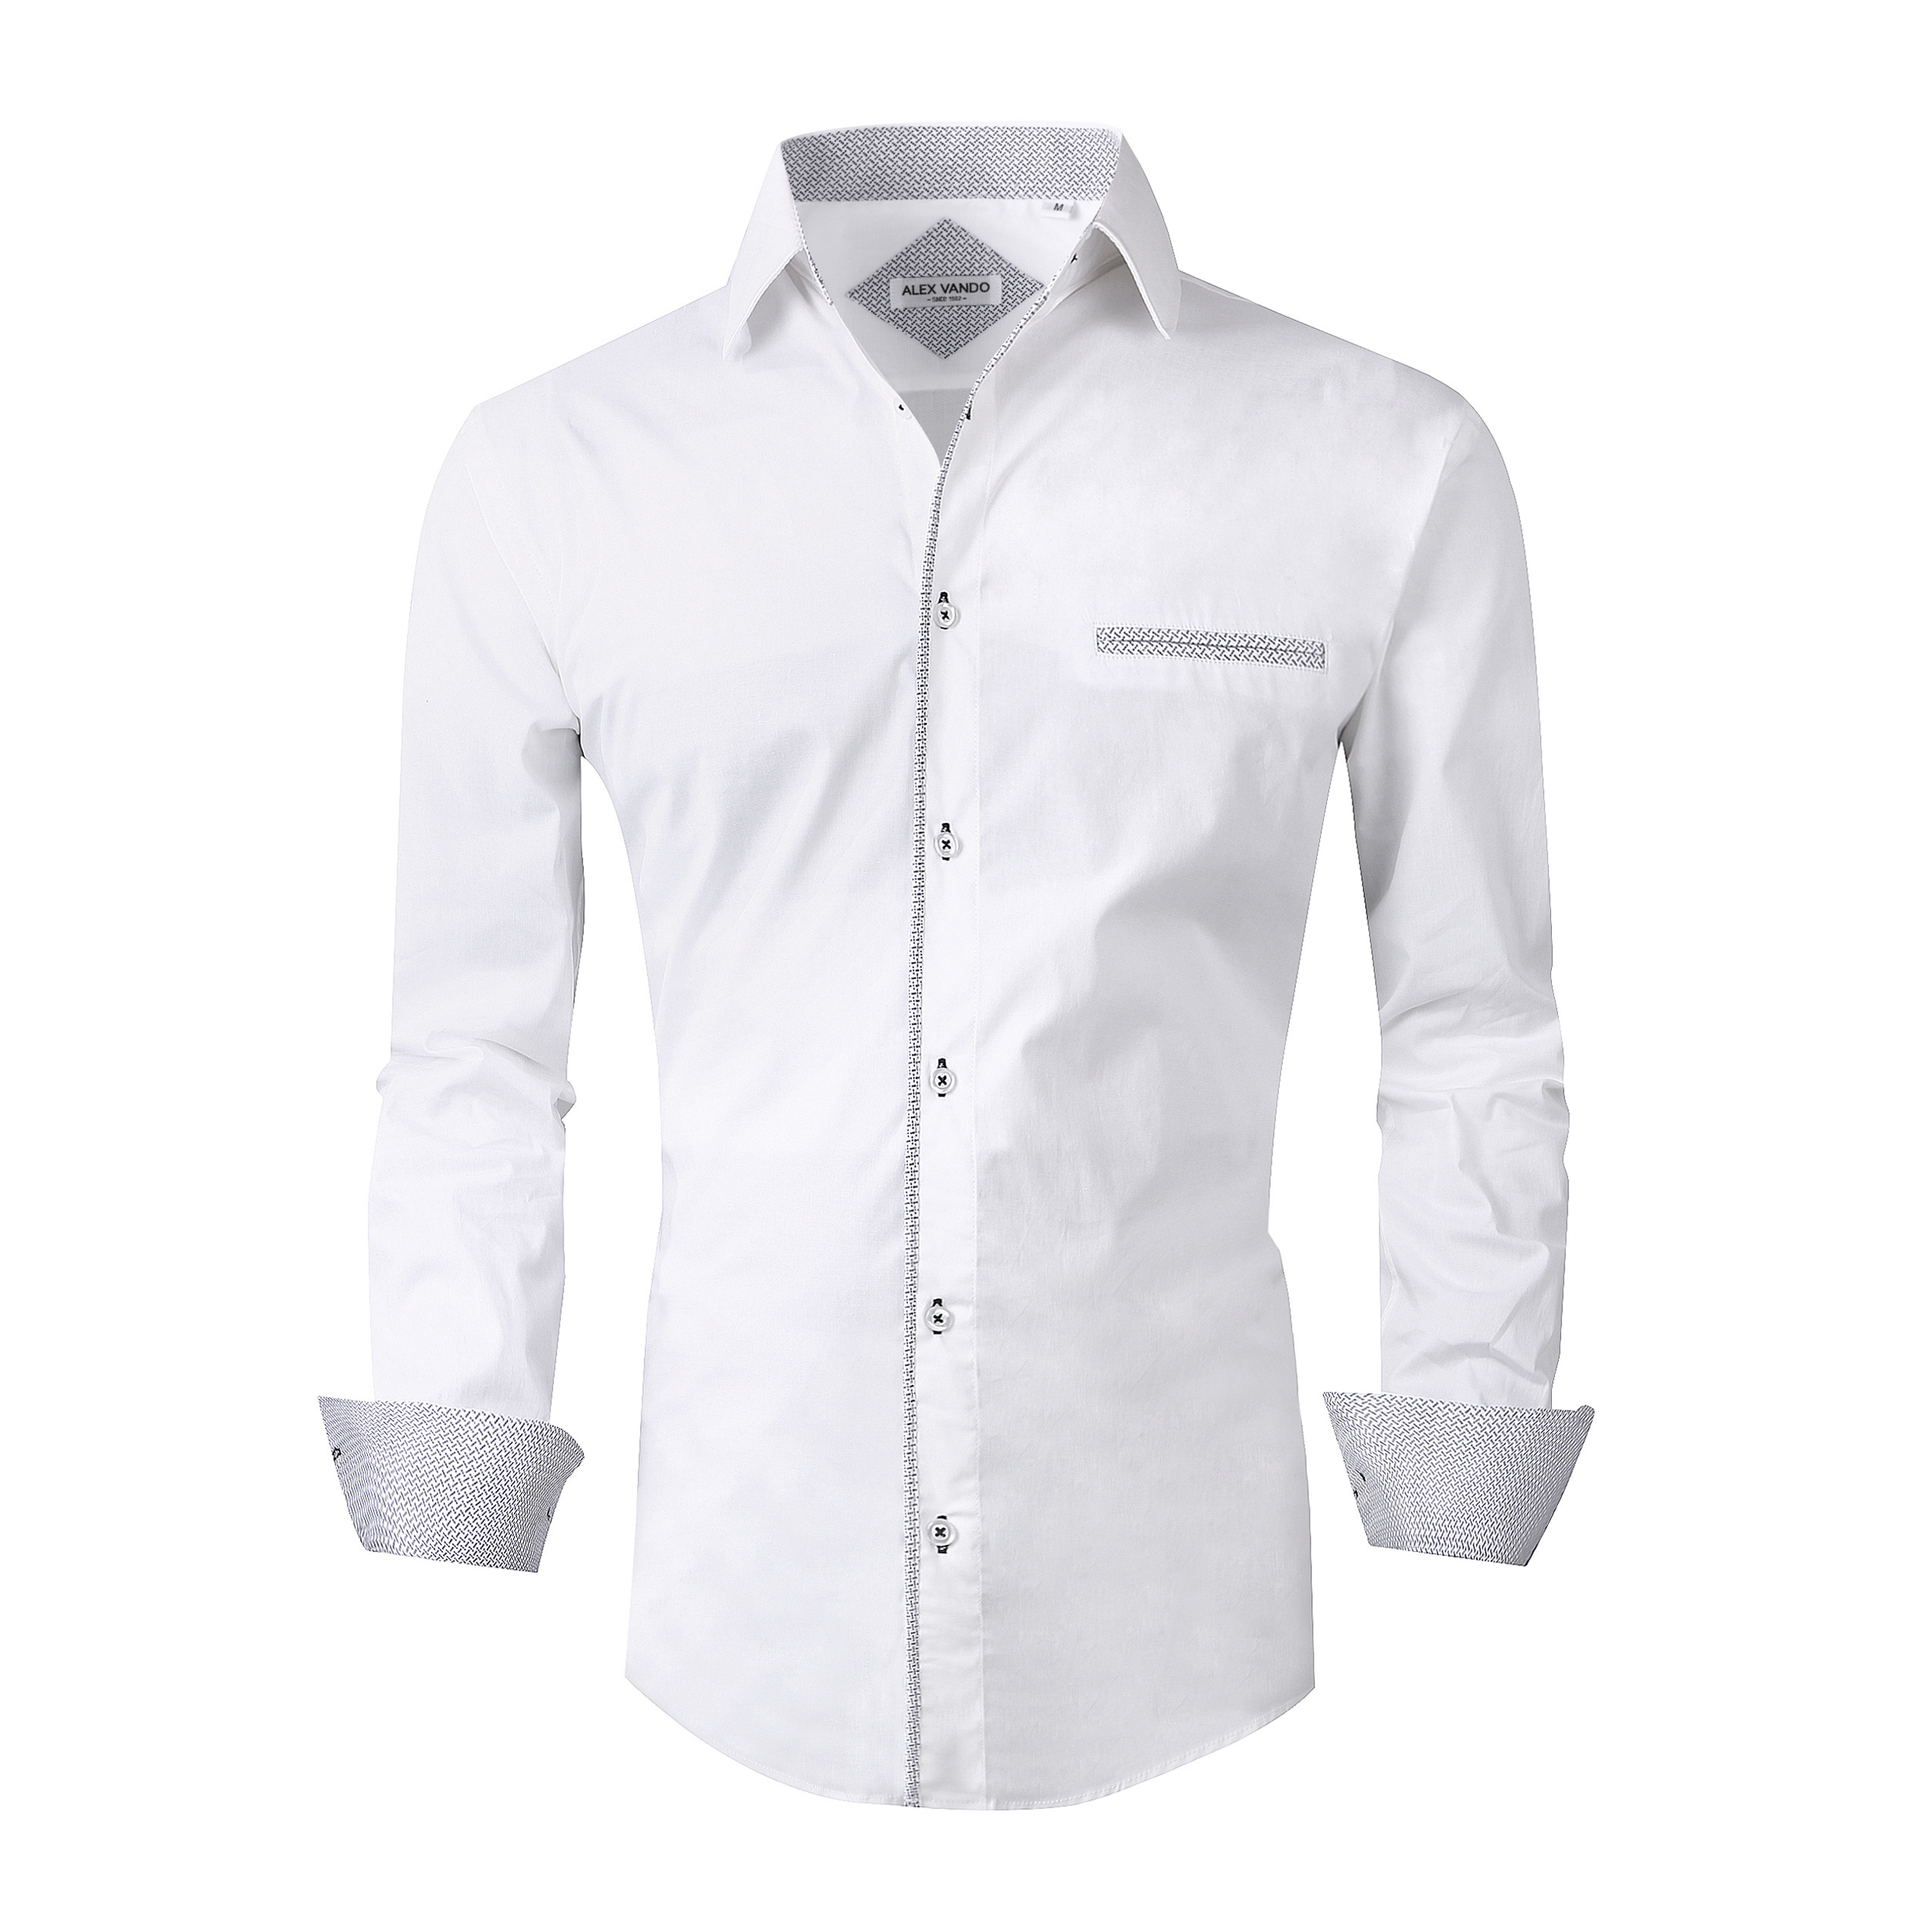 e405ca67c170 White Long Sleeve Shirt Mens Outfit